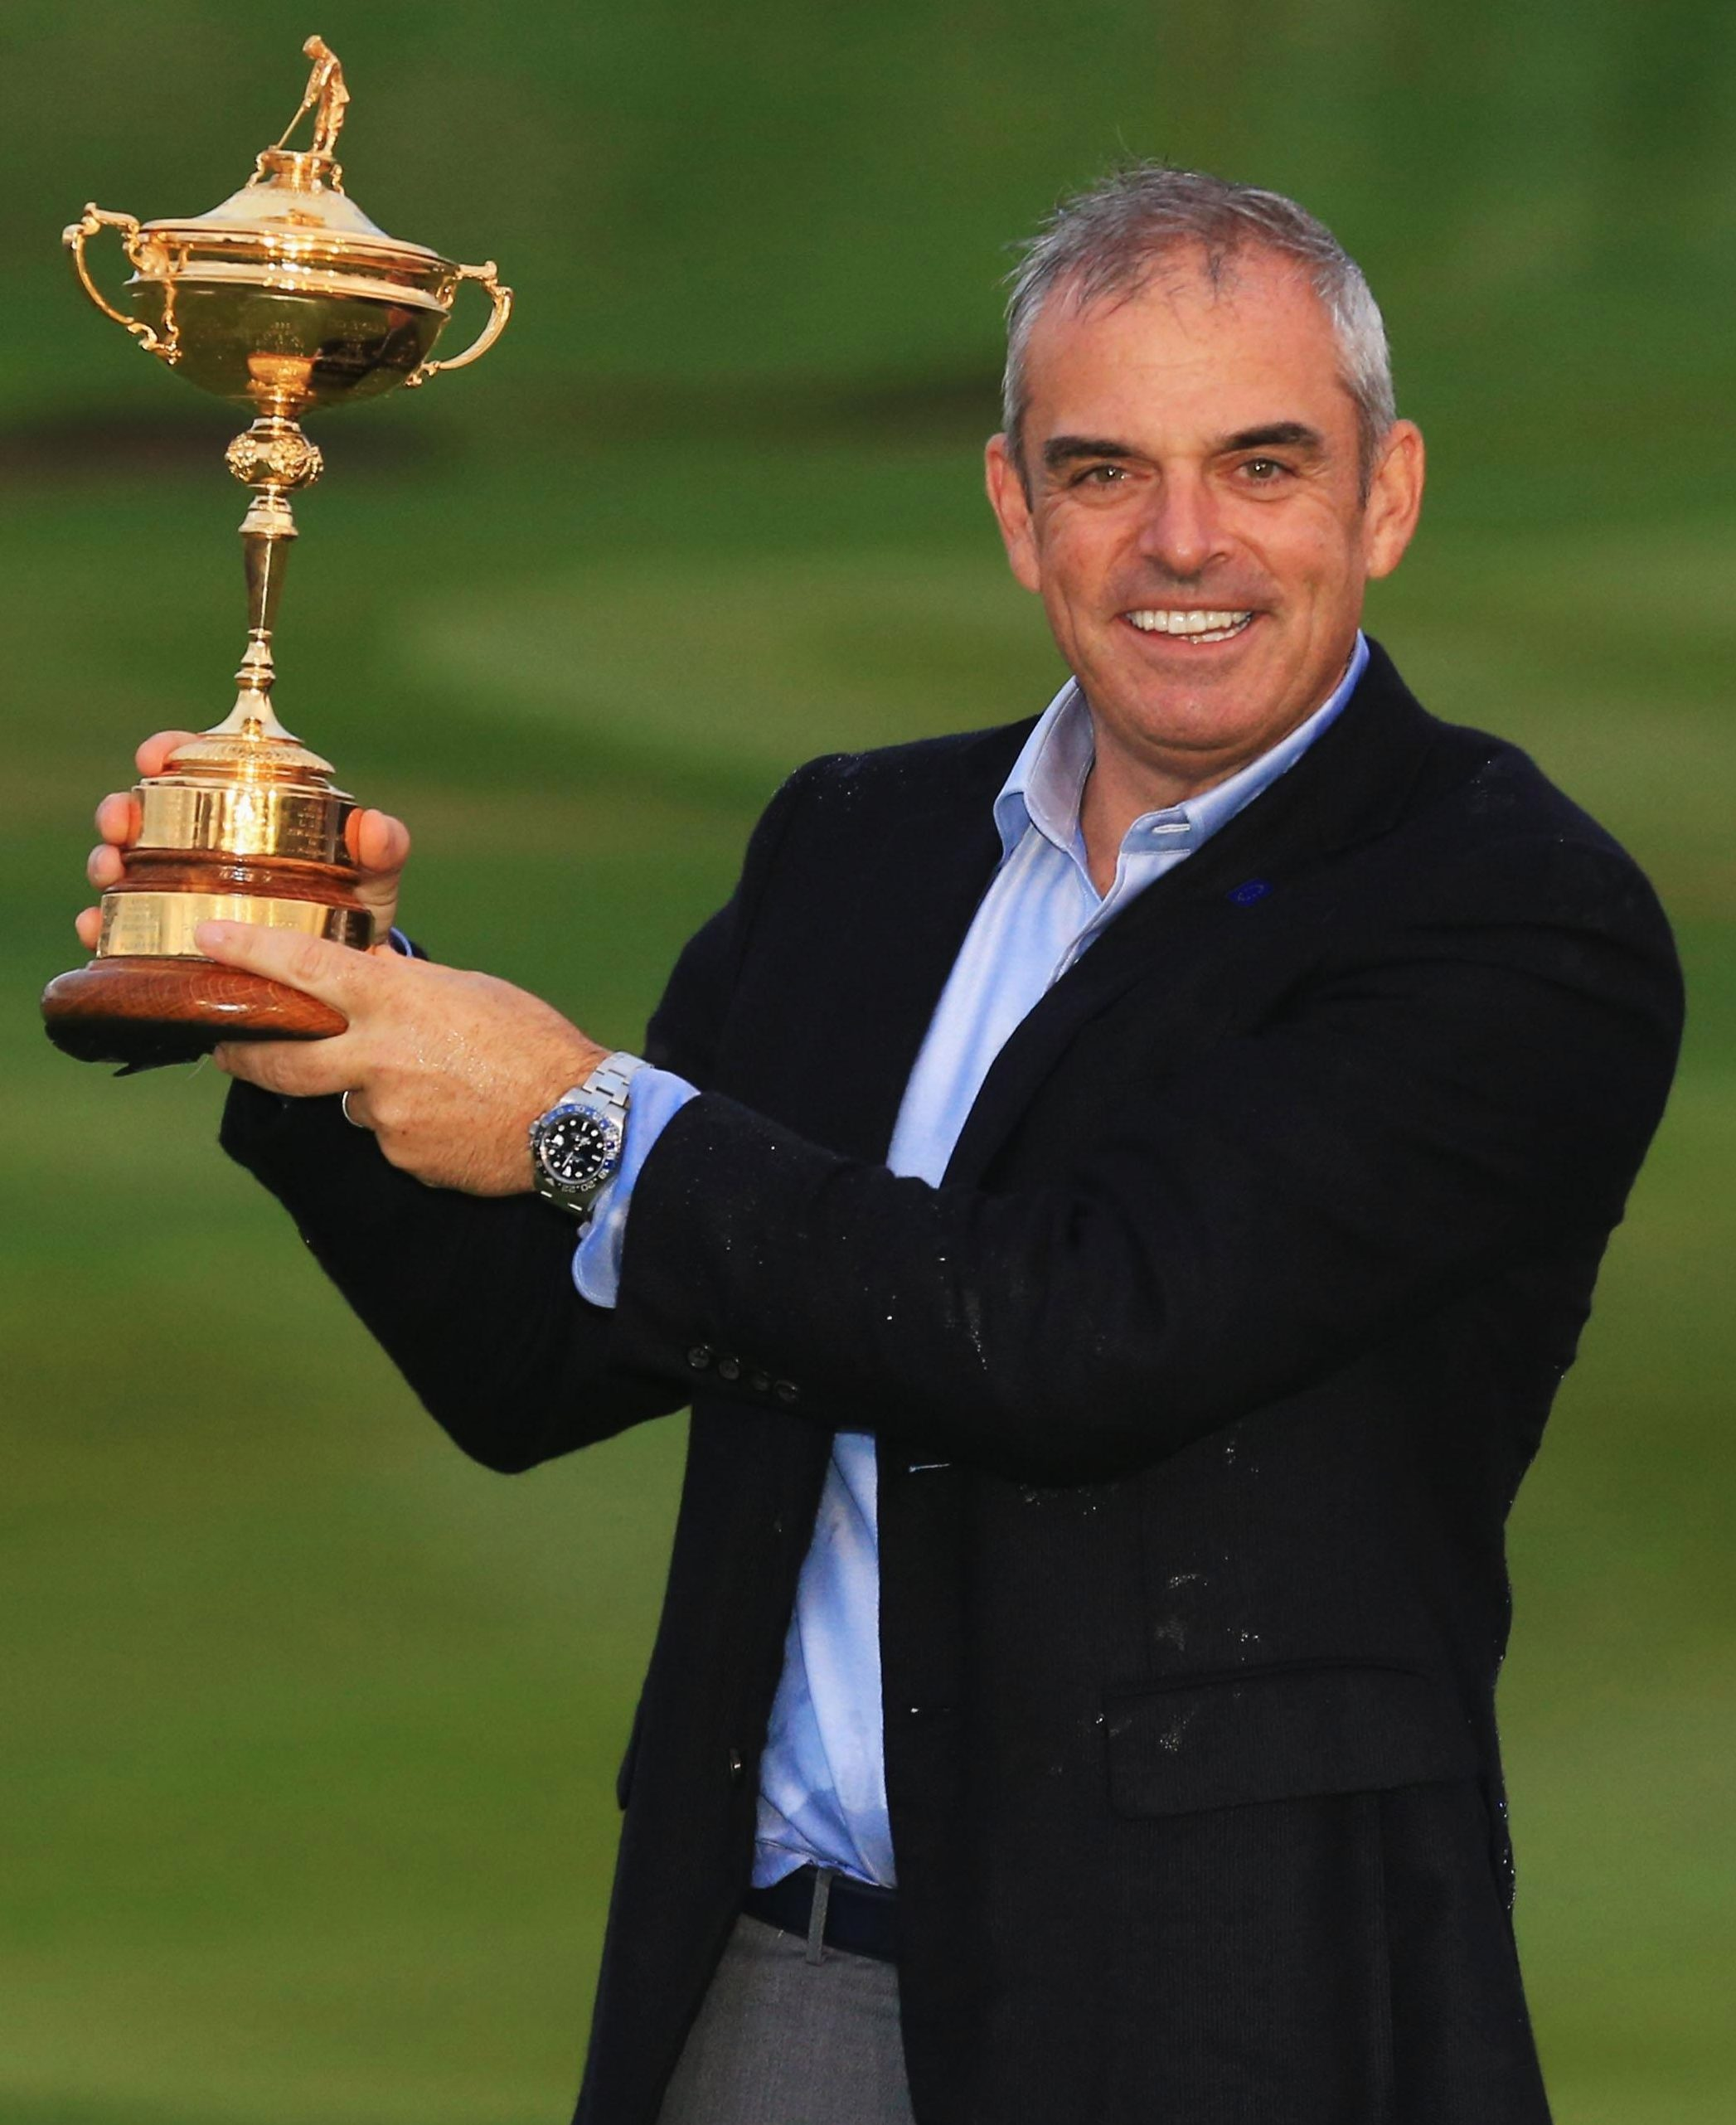 Paul McGinley was the captain at Gleneagles